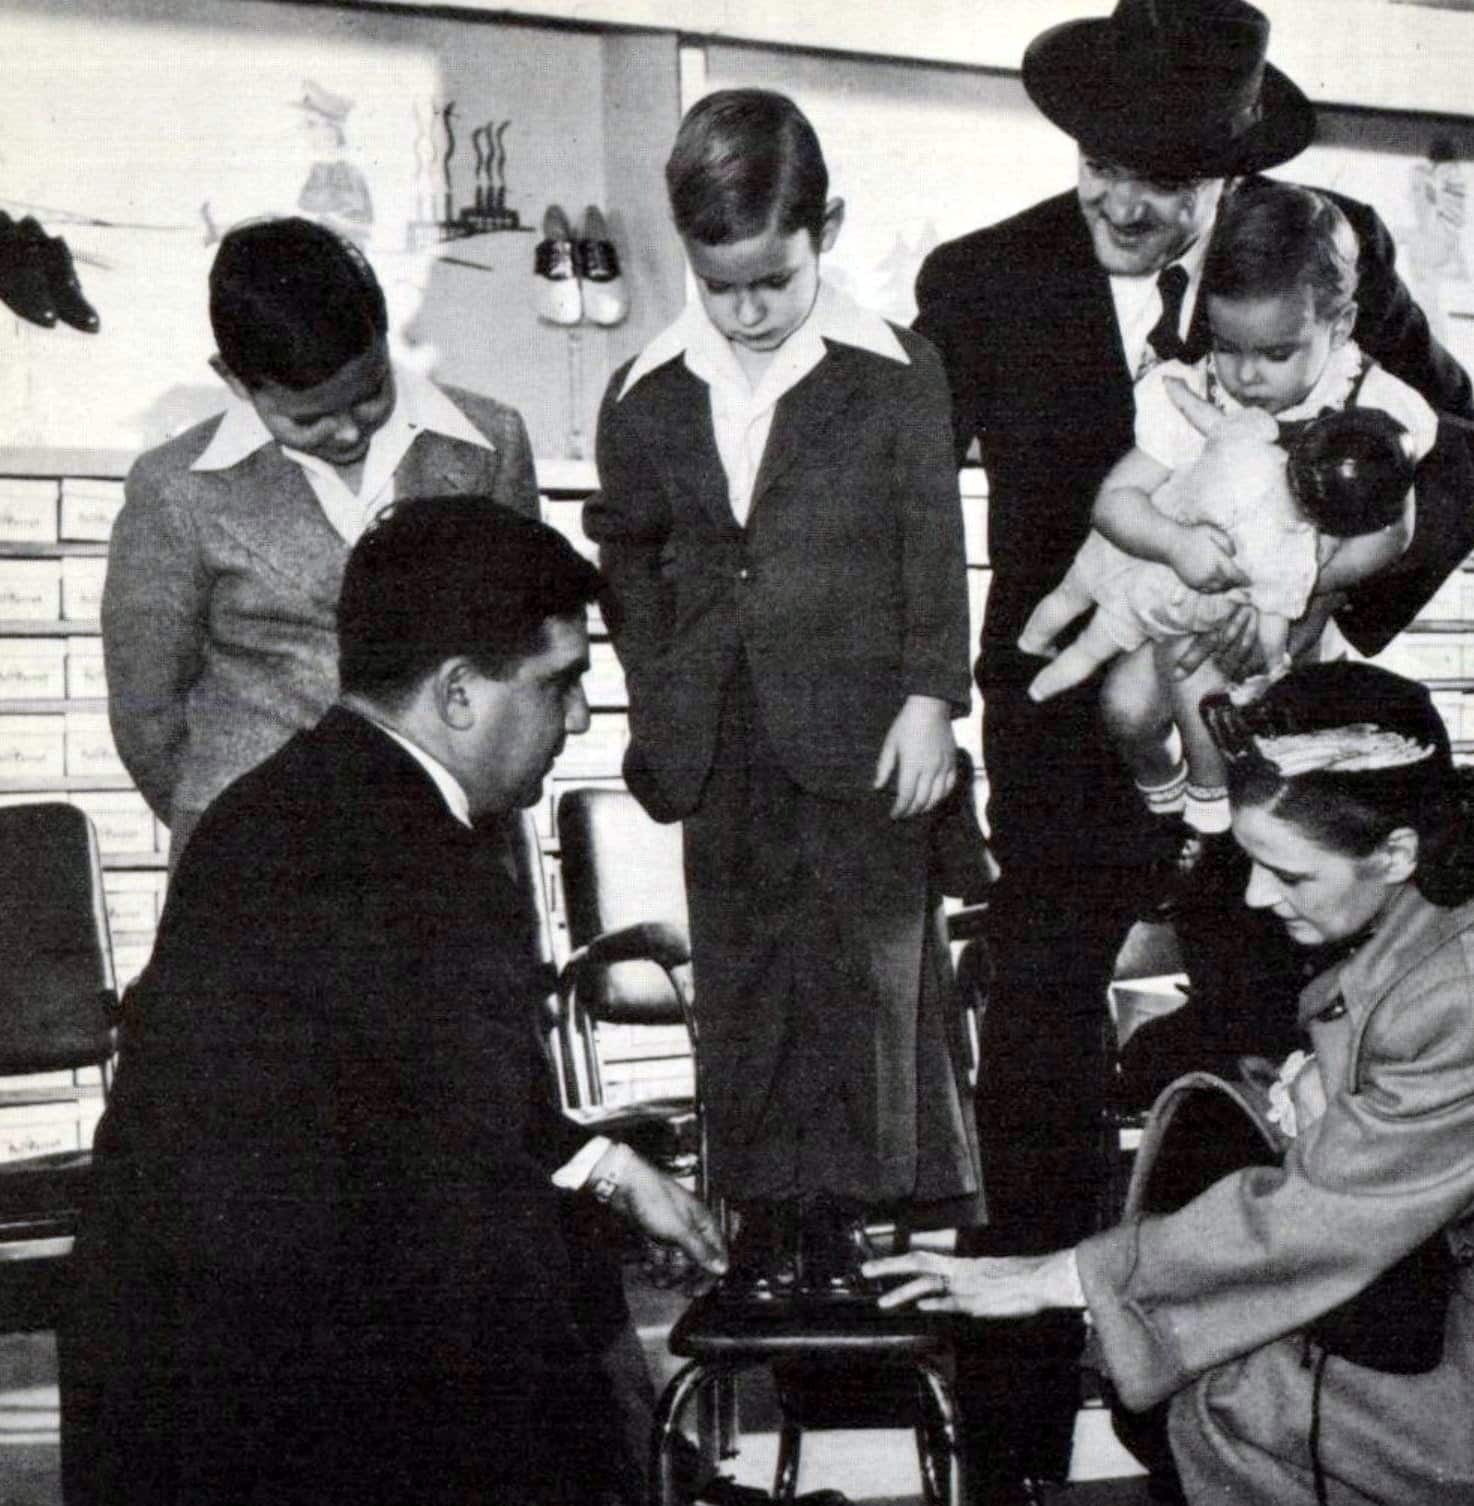 Measuring a boy's feet for a shoe fitting (1949)